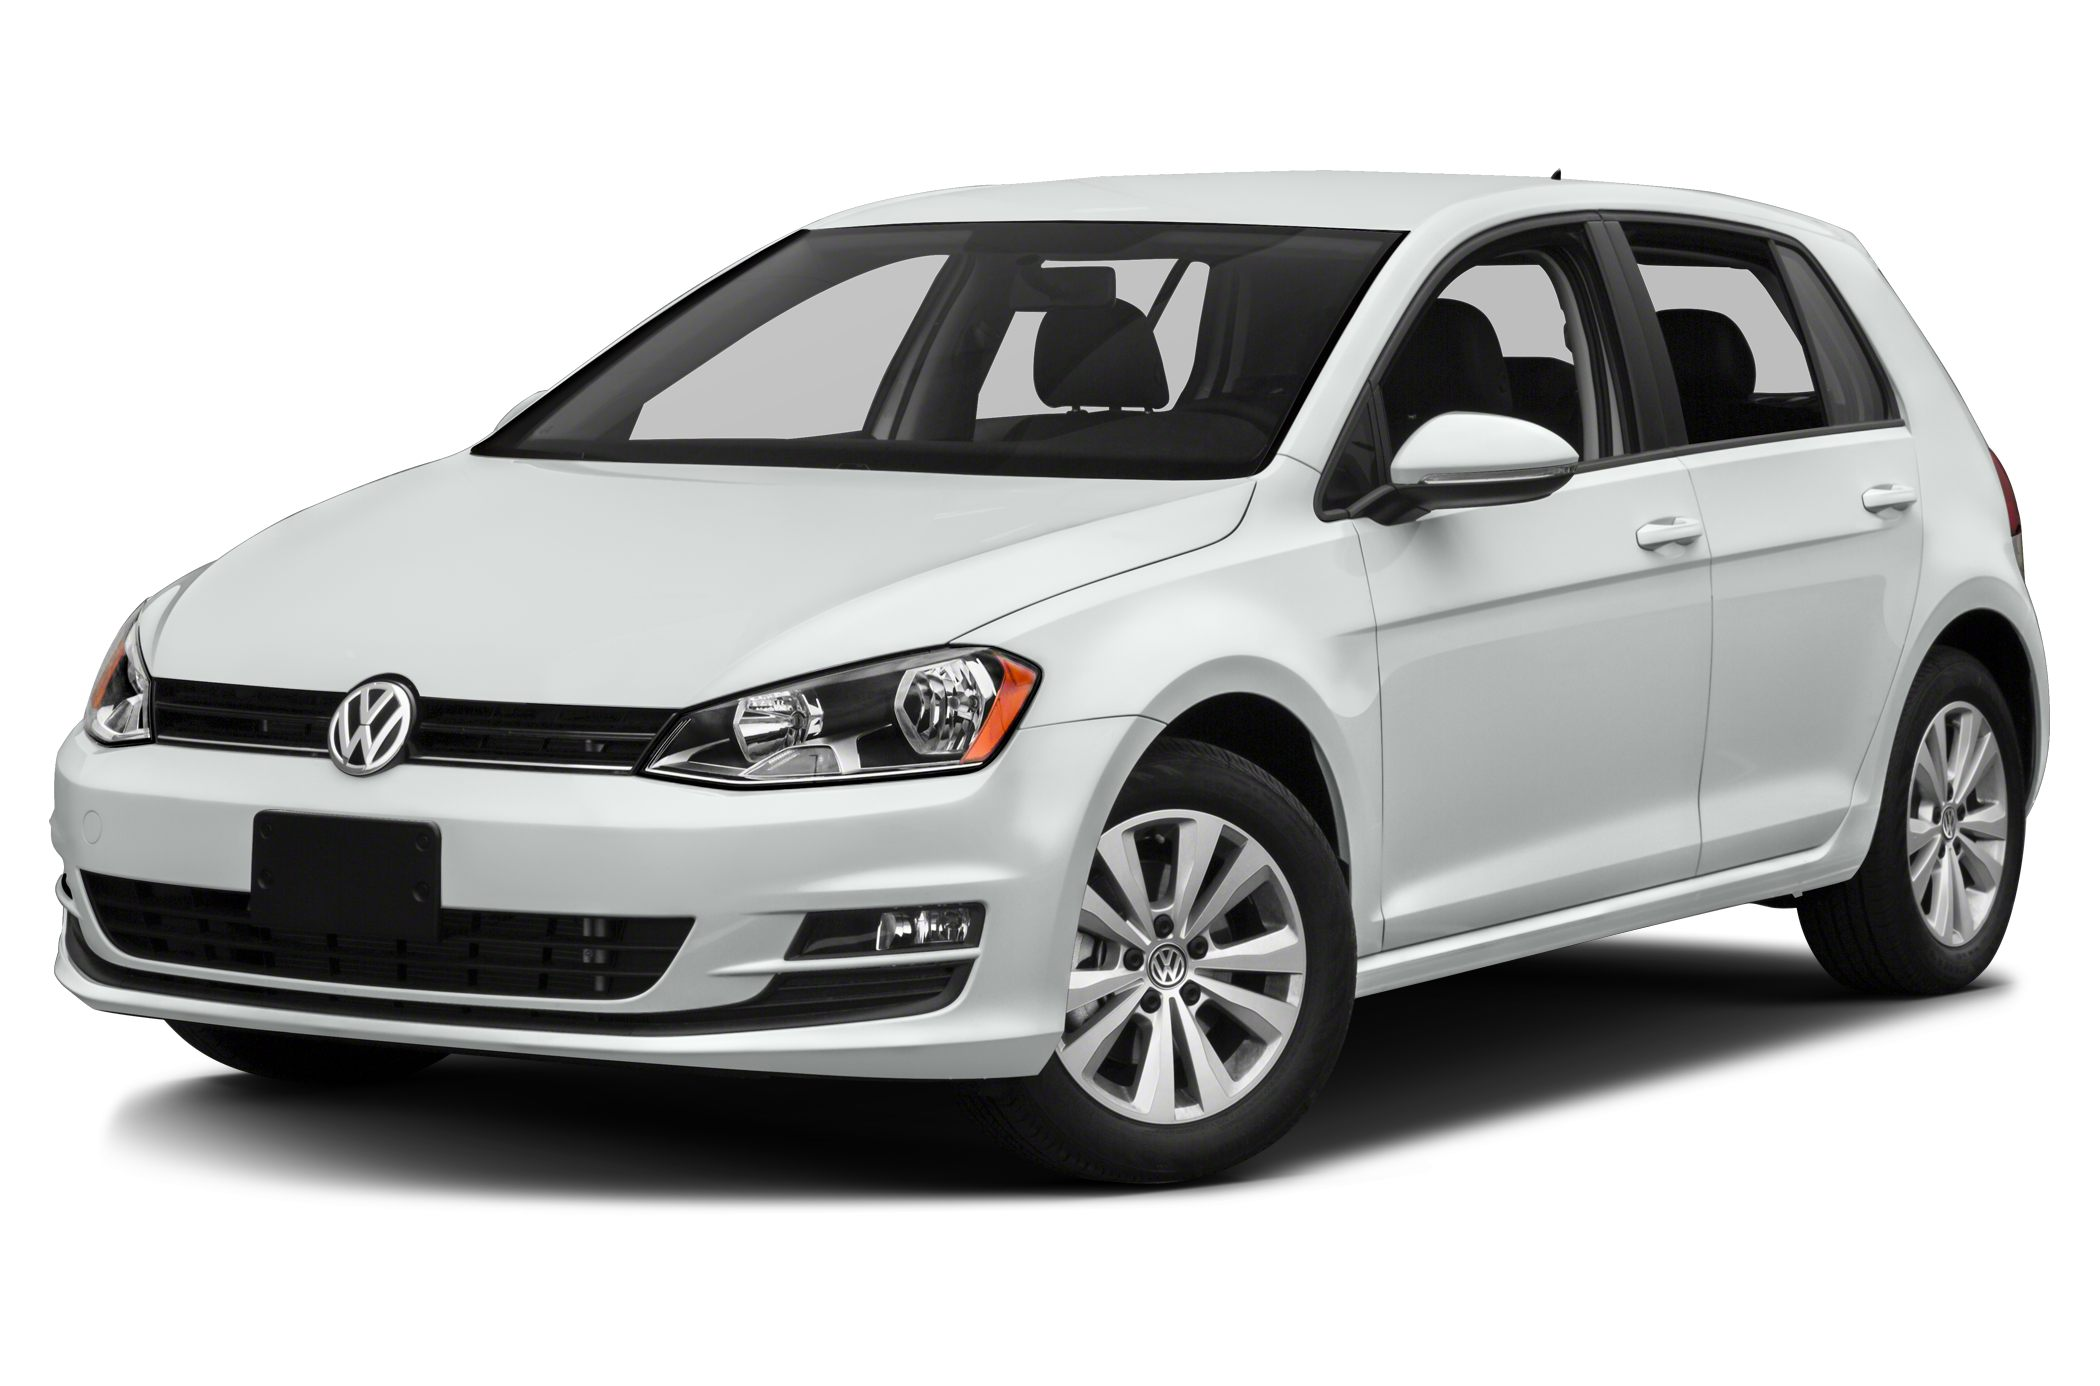 2015 Volkswagen Golf TSI S 4-Door Hatchback for sale in Chico for $22,500 with 268 miles.